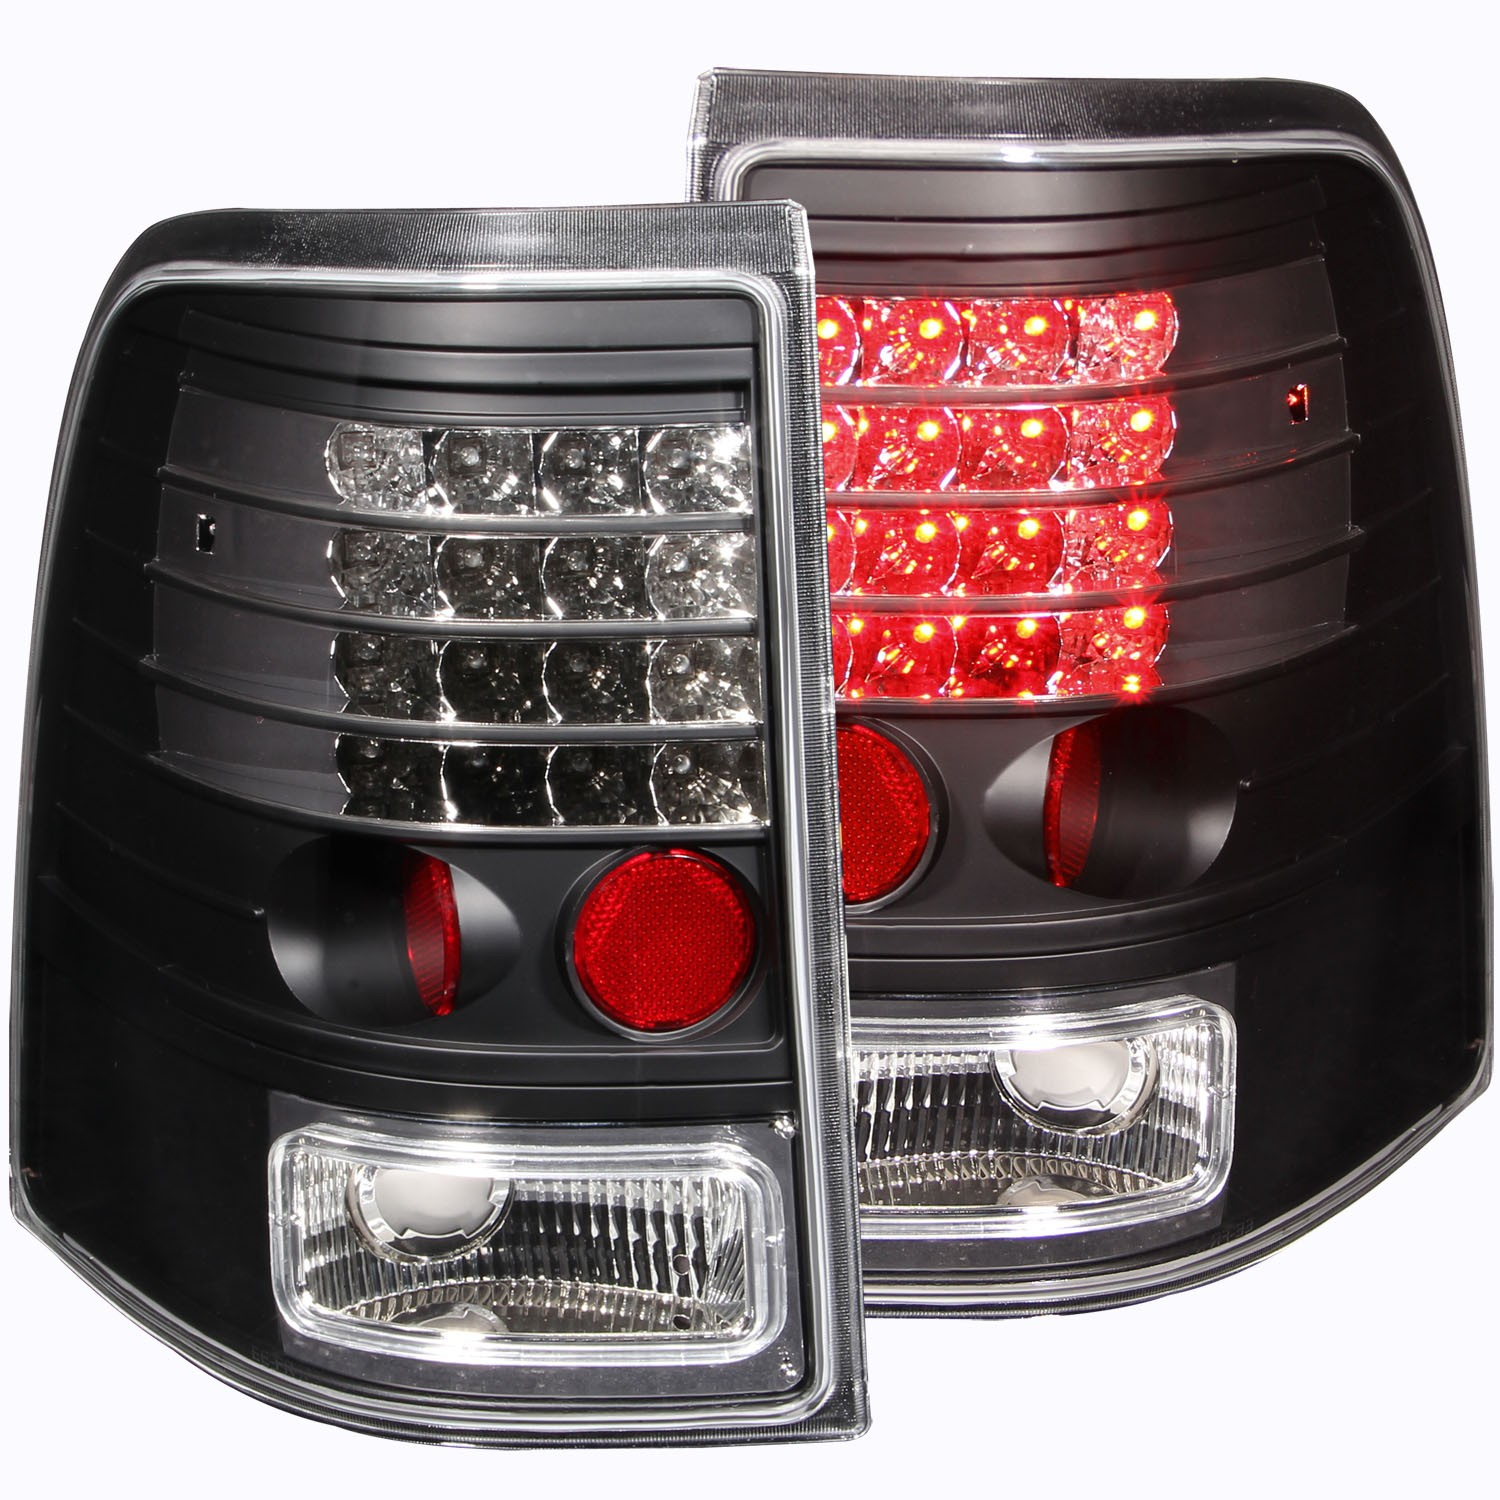 Details About Fits 02 05 Ford Explorer Tail Lights Left Right Pair W Clear Lens Black